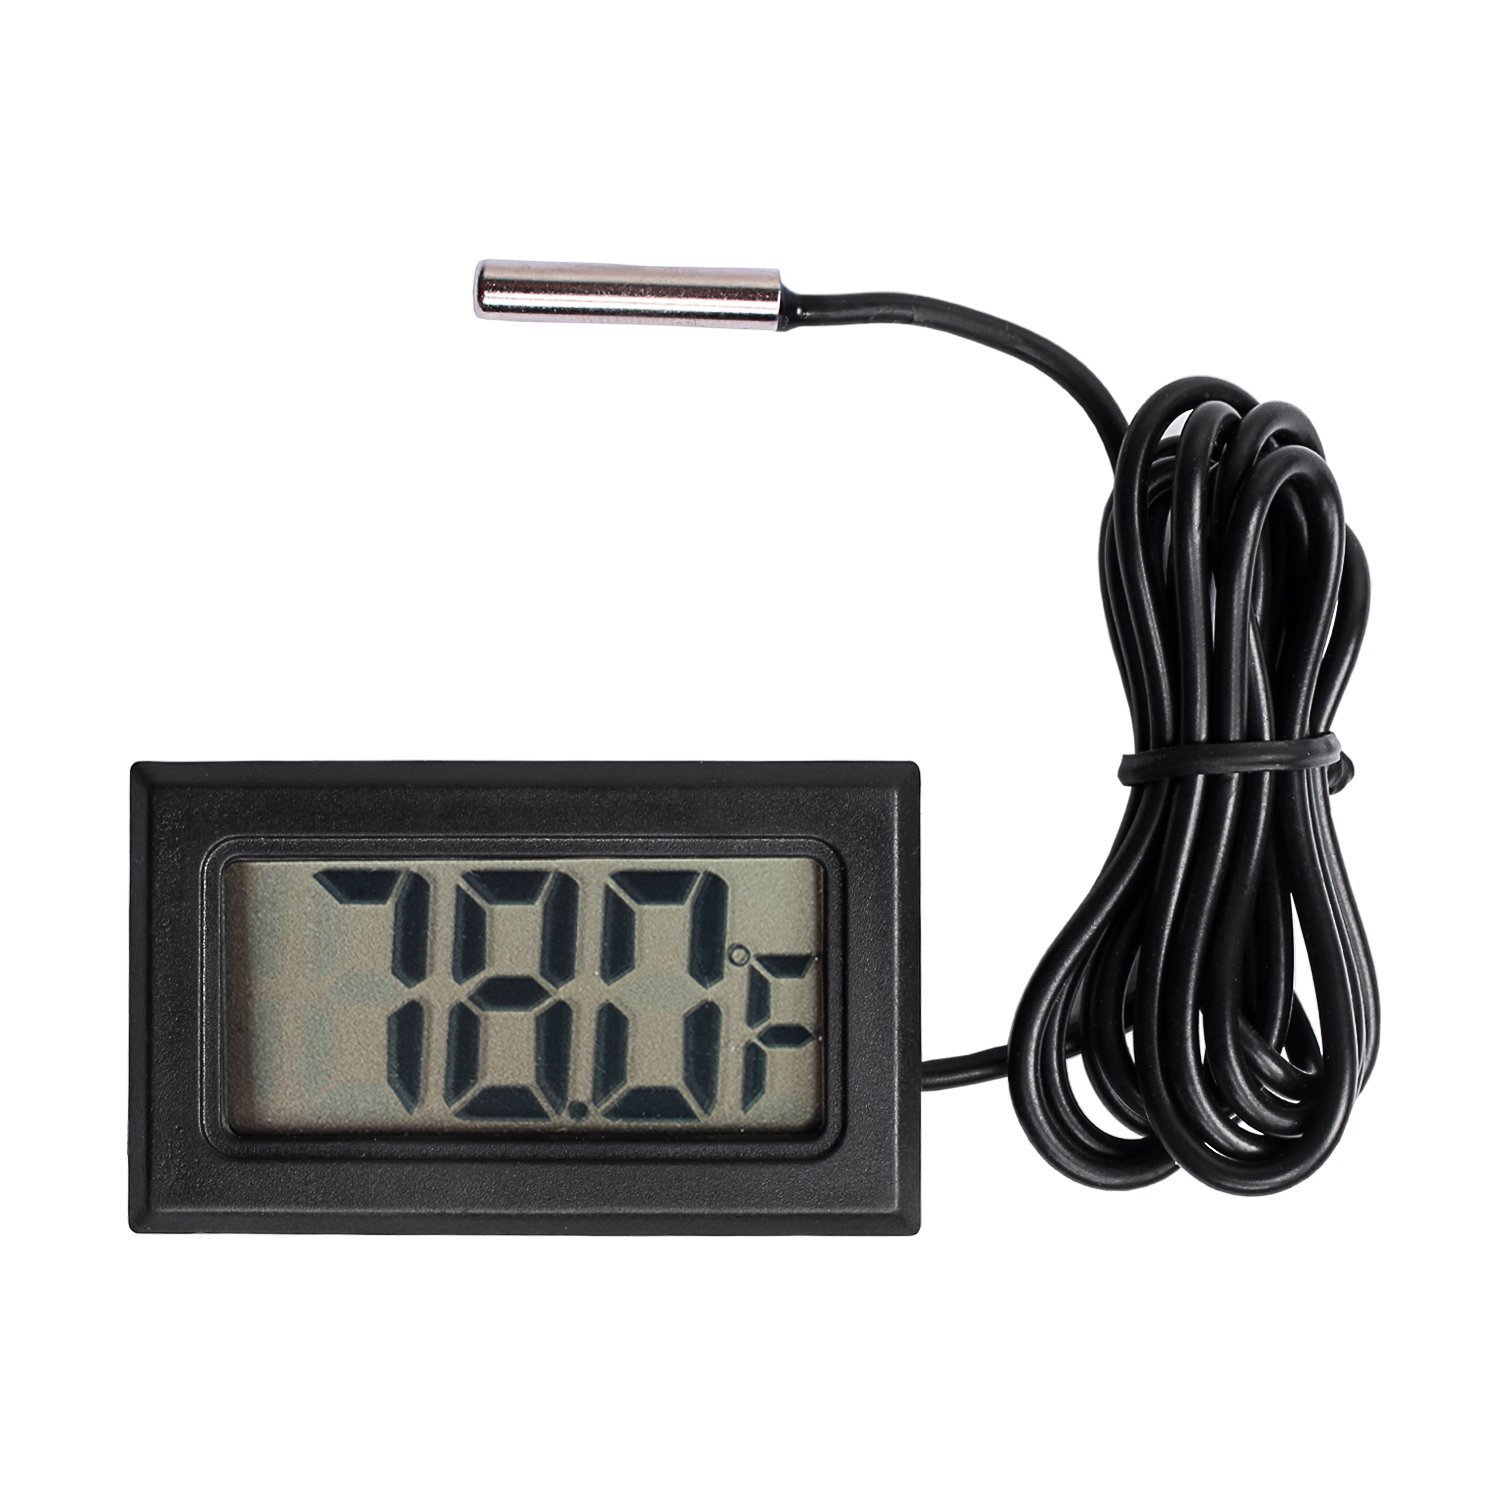 Qooltek Digital LCD Thermometer Temperature Gauge Aquarium Thermometer with Probe for Vehicle Reptile Terrarium Fish Tank Refrigerator(Fahrenheit)